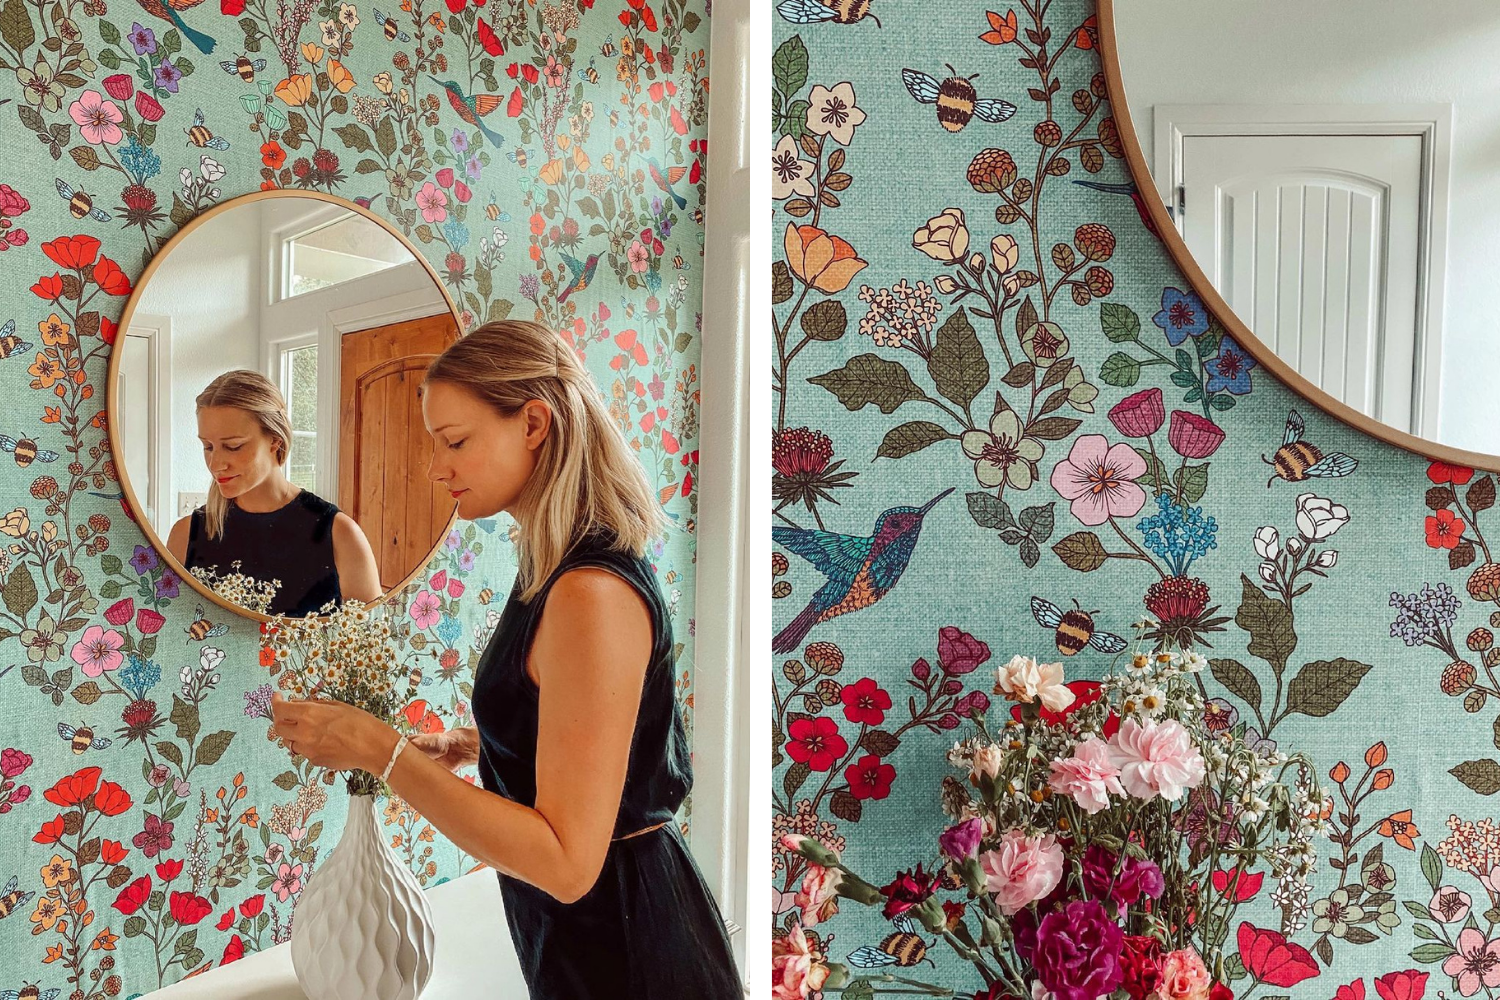 Entryway with a mirror and floral wallpaper